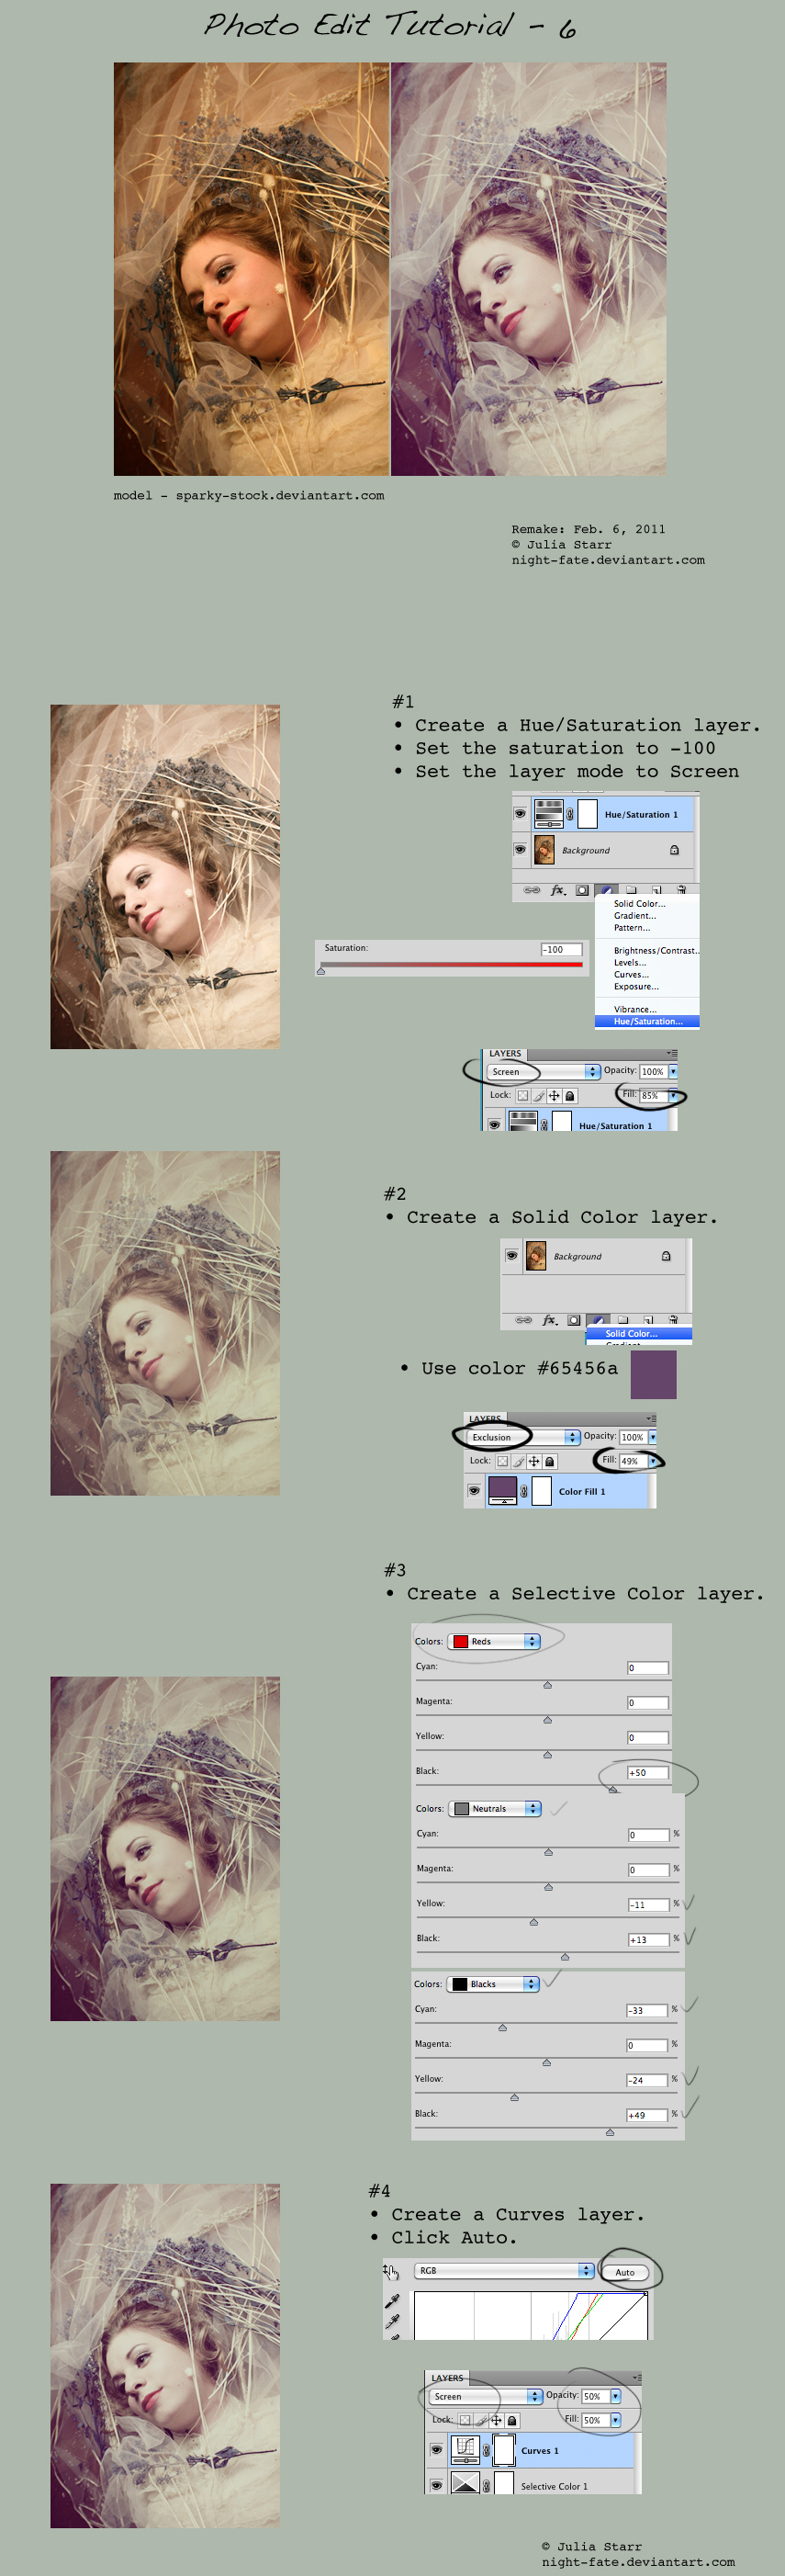 Post Processing in Digital Photography